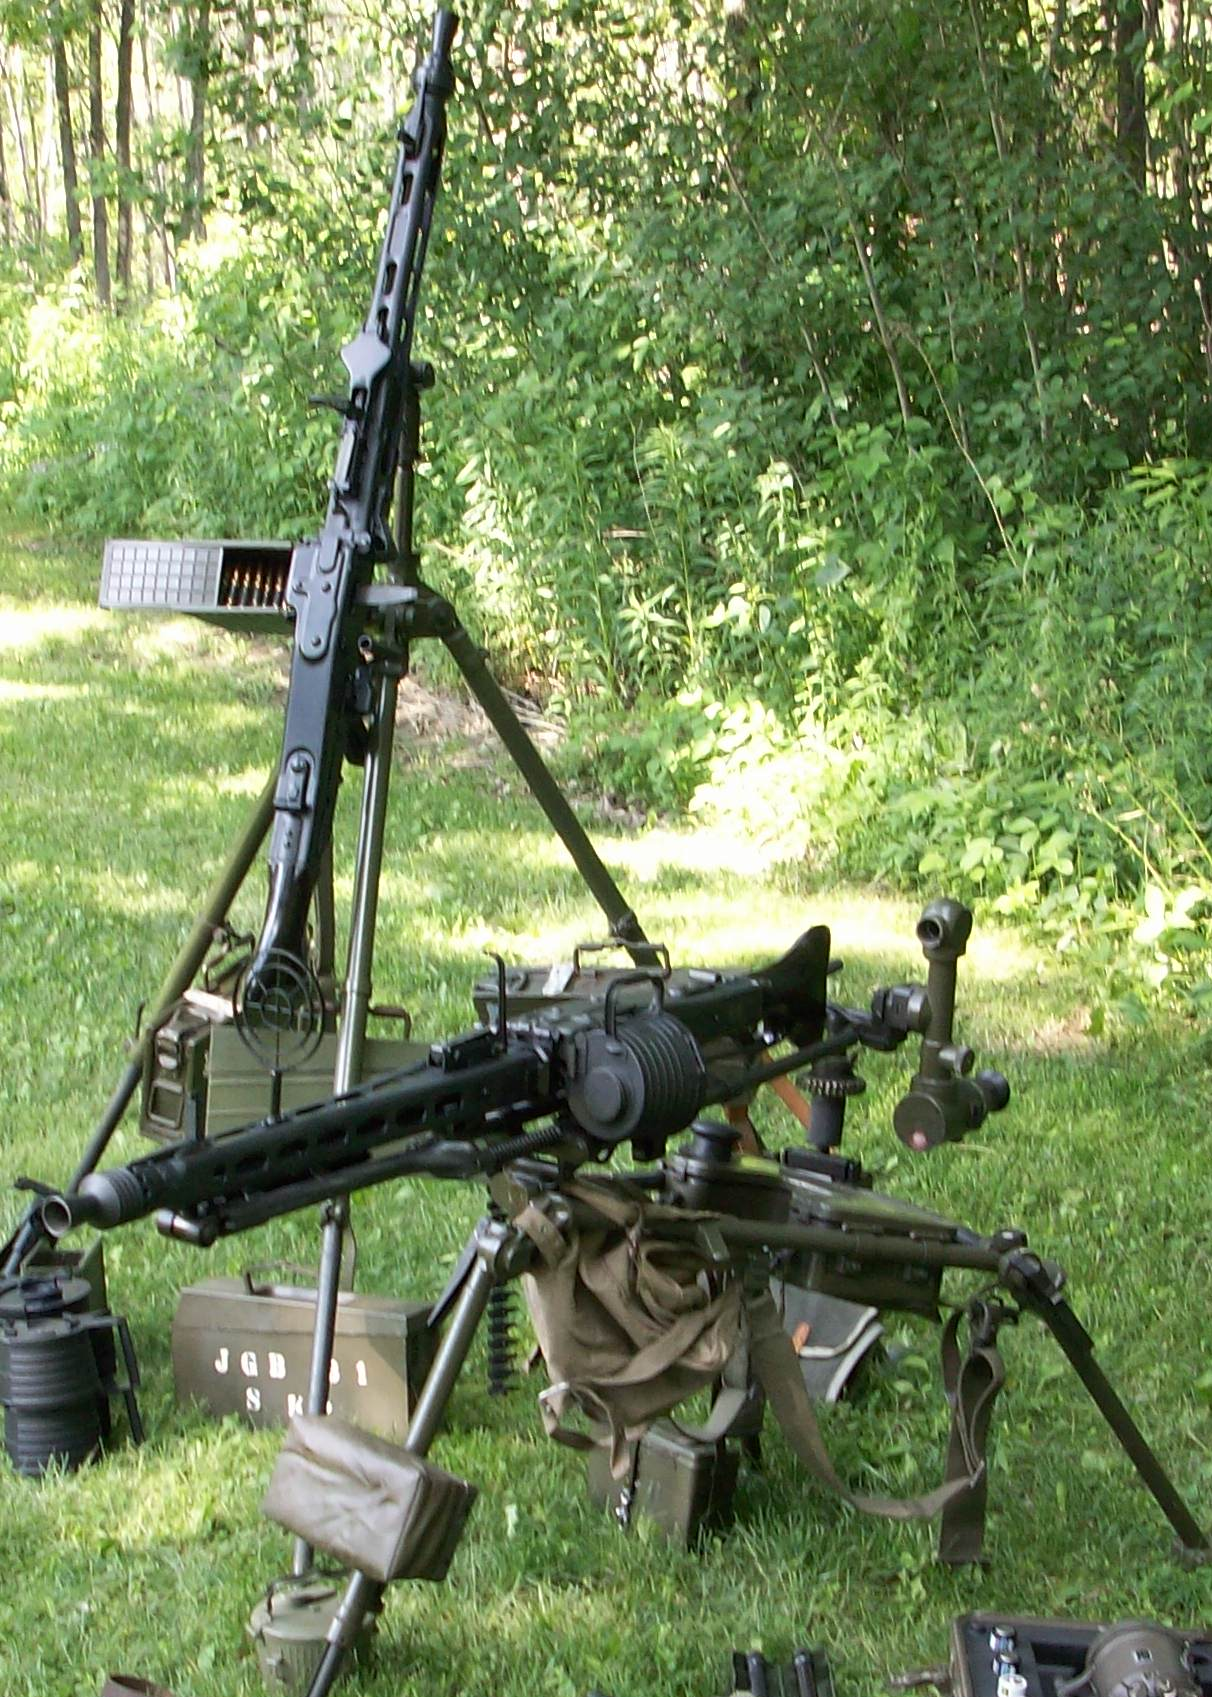 Anyone built an M53/MG42? - AR15 COM